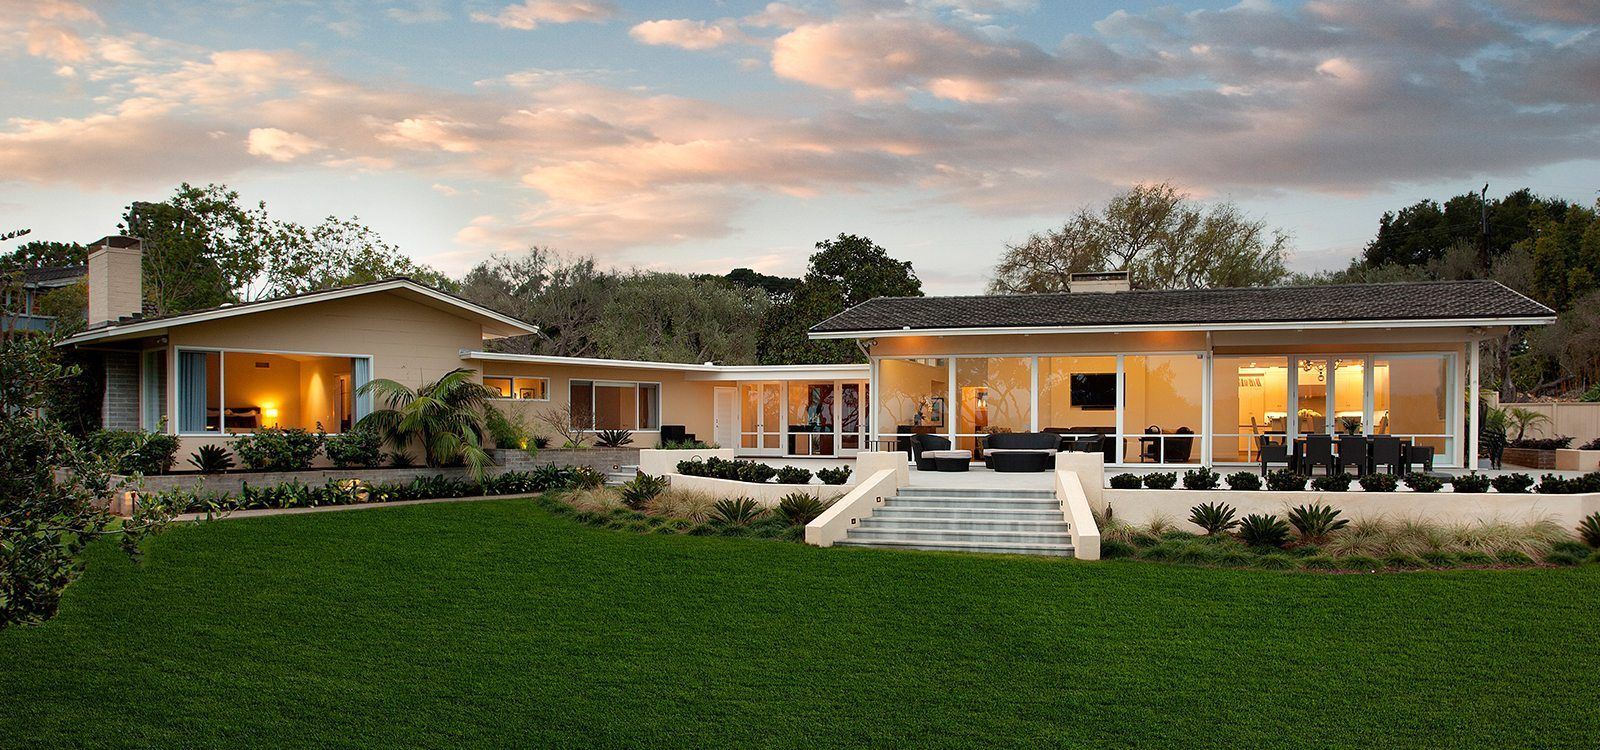 11 Awesome Modern Ranch Style Home Design Ideas Ranch House